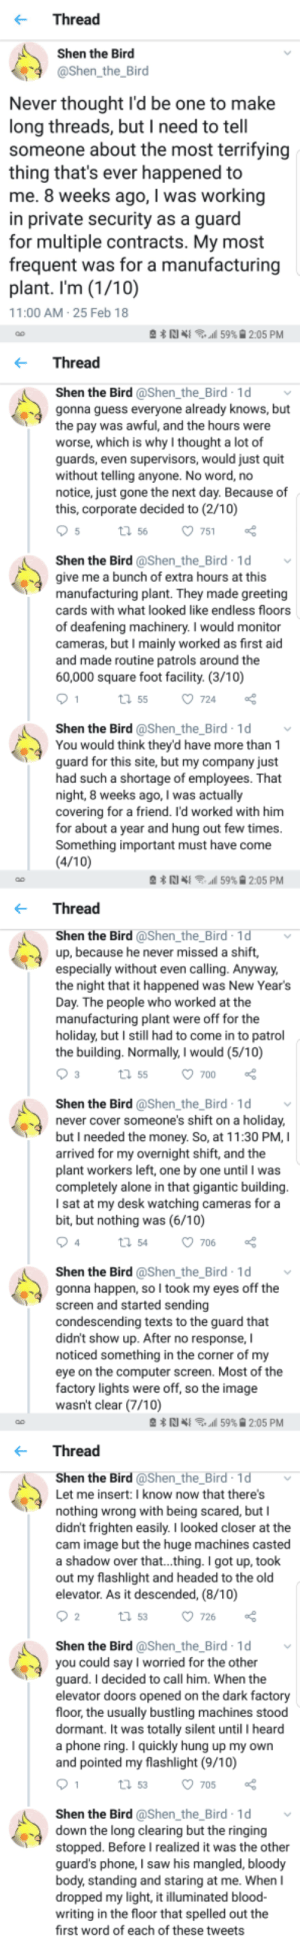 This gave me the shivers. by -Tinsky- FOLLOW 4 MORE MEMES.: Thread  Shen the Bird  @Shen the_Bird  Never thought l'd be one to make  long threads, but I need to tell  someone about the most terrifying  thing that's ever happened to  me. 8 weeks ago, I was working  in private security as a guard  for multiple contracts. My most  frequent was for a manufacturing  plant. I'm (1/10)  11:00 AM 25 Feb 18  N 59% 2:05 PM  Thread  Shen the Bird @Shen_the_Bird 1d  gonna guess everyone already knows, but  the pay was awful, and the hours were  worse, which is why I thought a lot of  guards, even supervisors, would just quit  without telling anyone. No word, no  notice, just gone the next day. Because of  this, corporate decided to (2/10)  5  t 56  751  Shen the Bird @Shen_the_Bird 1d  give me a bunch of extra hours at this  manufacturing plant. They made greeting  cards with what looked like endless floors  of deafening machinery. I would monitor  cameras, but I mainly worked as first aid  and made routine patrols around the  60,000 square foot facility. (3/10)  1  724  t 55  Shen the Bird @Shen_the_Bird 1d  You would think they'd have more than 1  guard for this site, but my company just  had such a shortage of employees. That  night, 8 weeks ago, I was actually  covering for a friend. I'd worked with him  for about a year and hung out few times.  Something important must have come  (4/10)  59% 9 2:05 PM  Thread  Shen the Bird @Shen_the_Bird 1d  up, because he never missed a shift,  especially without even calling. Anyway,  the night that it happened was New Year's  Day. The people who worked at the  manufacturing plant were off for the  holiday, but I still had to come in to patrol  the building. Normally, I would (5/10)  3  t 55  700  Shen the Bird @Shen_the_Bird 1d  never cover someone's shift on a holiday,  but I needed the money. So, at 11:30 PM, I  arrived for my overnight shift, and the  plant workers left, one by one until I was  completely alone in that gigantic building.  I sat at my desk watching cameras for a  bit, but nothing was (6/10)  4  706  t54  Shen the Bird @Shen_the_Bird 1d  gonna happen, so I took my eyes off the  screen and started sending  condescending texts to the guard that  didn't show up. After no response,  noticed something in the corner of my  eye on the computer screen. Most of the  factory lights were off, so the image  wasn't clear (7/10)  59% 2:05 PM  Thread  Shen the Bird @Shen_the_Bird-1d  Let me insert: I know now that there's  nothing wrong with being scared, but I  didn't frighten easily. I looked closer at the  cam image but the huge machines casted  a shadow over that...thing. I got up, took  out my flashlight and headed to the old  elevator. As it descended, (8/10)  2  726  t 53  Shen the Bird @Shen_the_Bird 1d  you could say l worried for the other  guard. I decided to call him. When the  elevator doors opened on the dark factory  floor, the usually bustling machines stood  dormant. It was totally silent until I heard  a phone ring. I quickly hung up my own  and pointed my flashlight (9/10)  1  t 53  705  Shen the Bird @Shen_the_Bird 1d  down the long clearing but the ringing  stopped. Before I realized it was the other  guard's phone, I saw his mangled, bloody  body, standing and staring at me. When  dropped my light, it illuminated blood-  writing in the floor that spelled out the  first word of each of these tweets This gave me the shivers. by -Tinsky- FOLLOW 4 MORE MEMES.